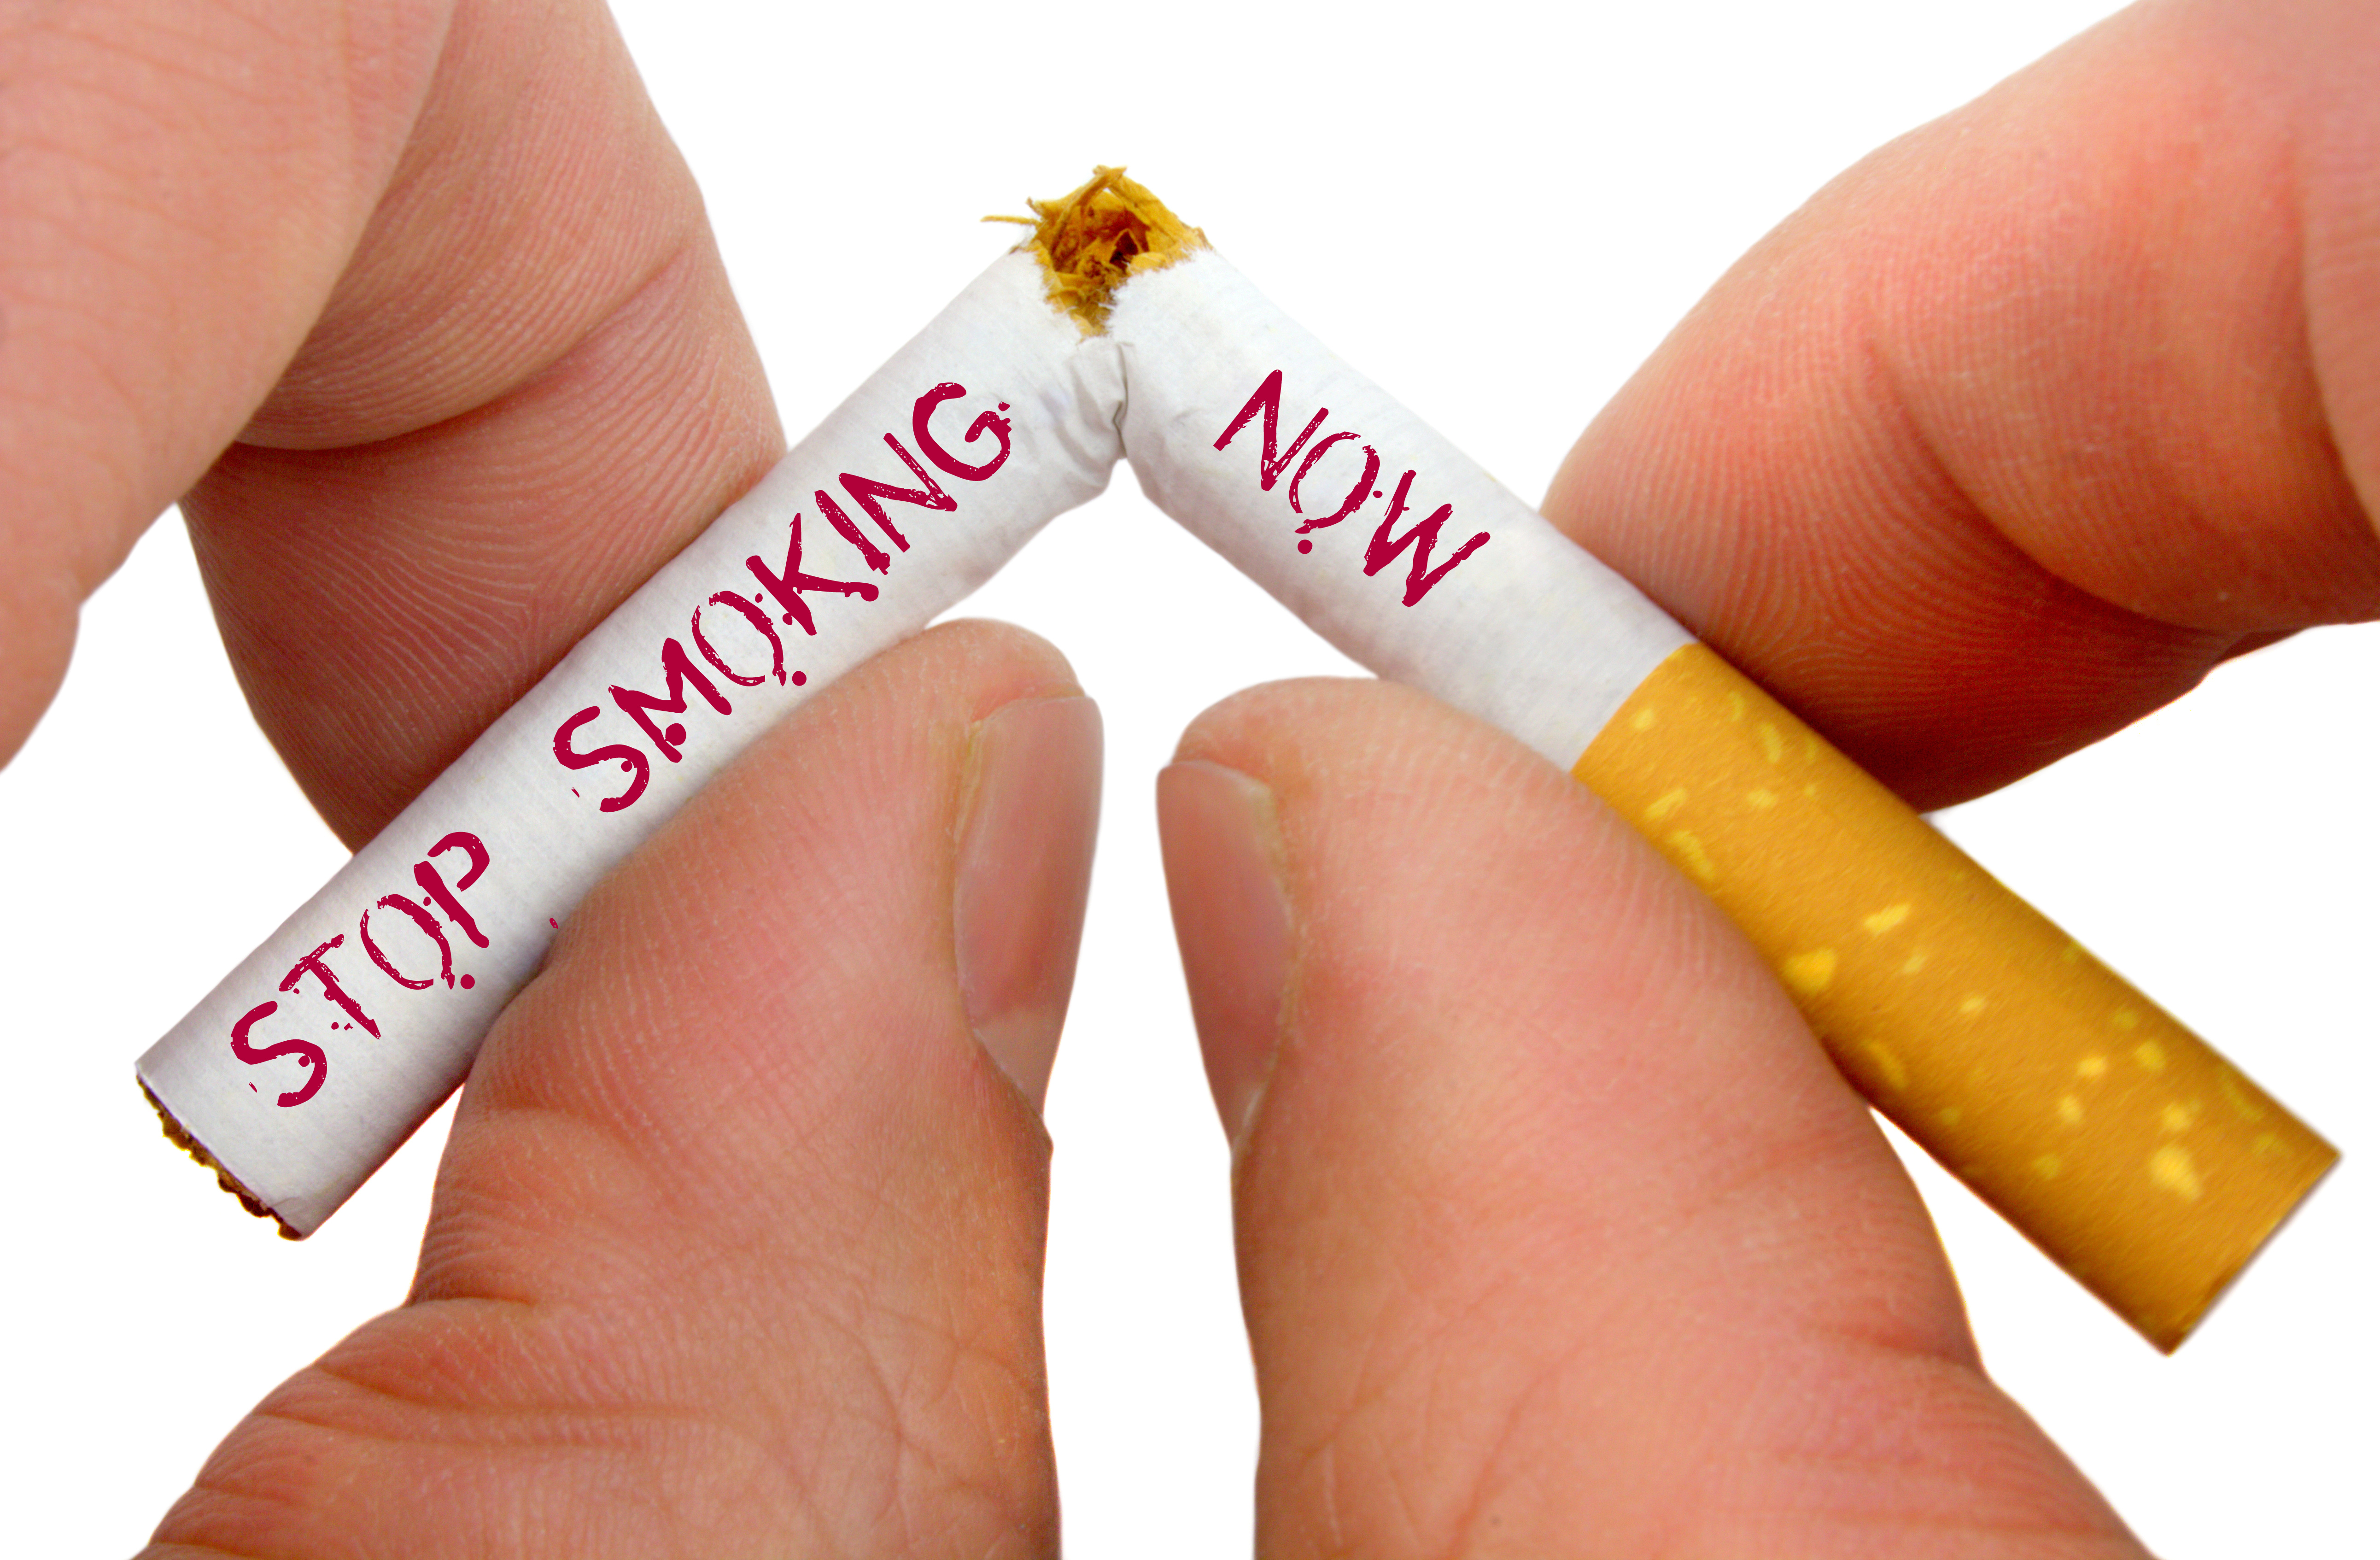 Quit Smoking Now or Suffer the Consequences